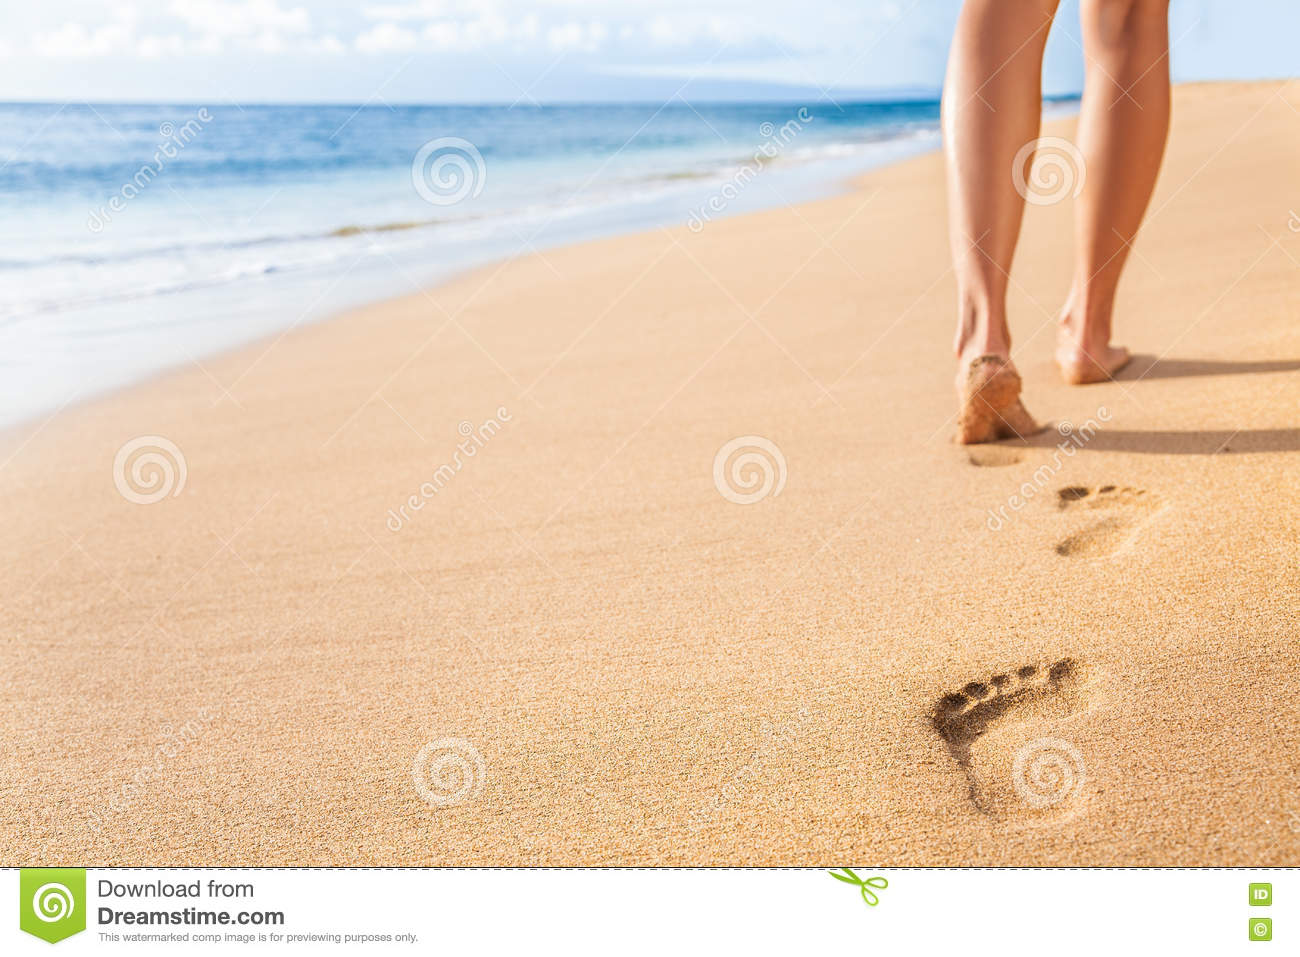 Beach sand footprints woman legs walking relaxing